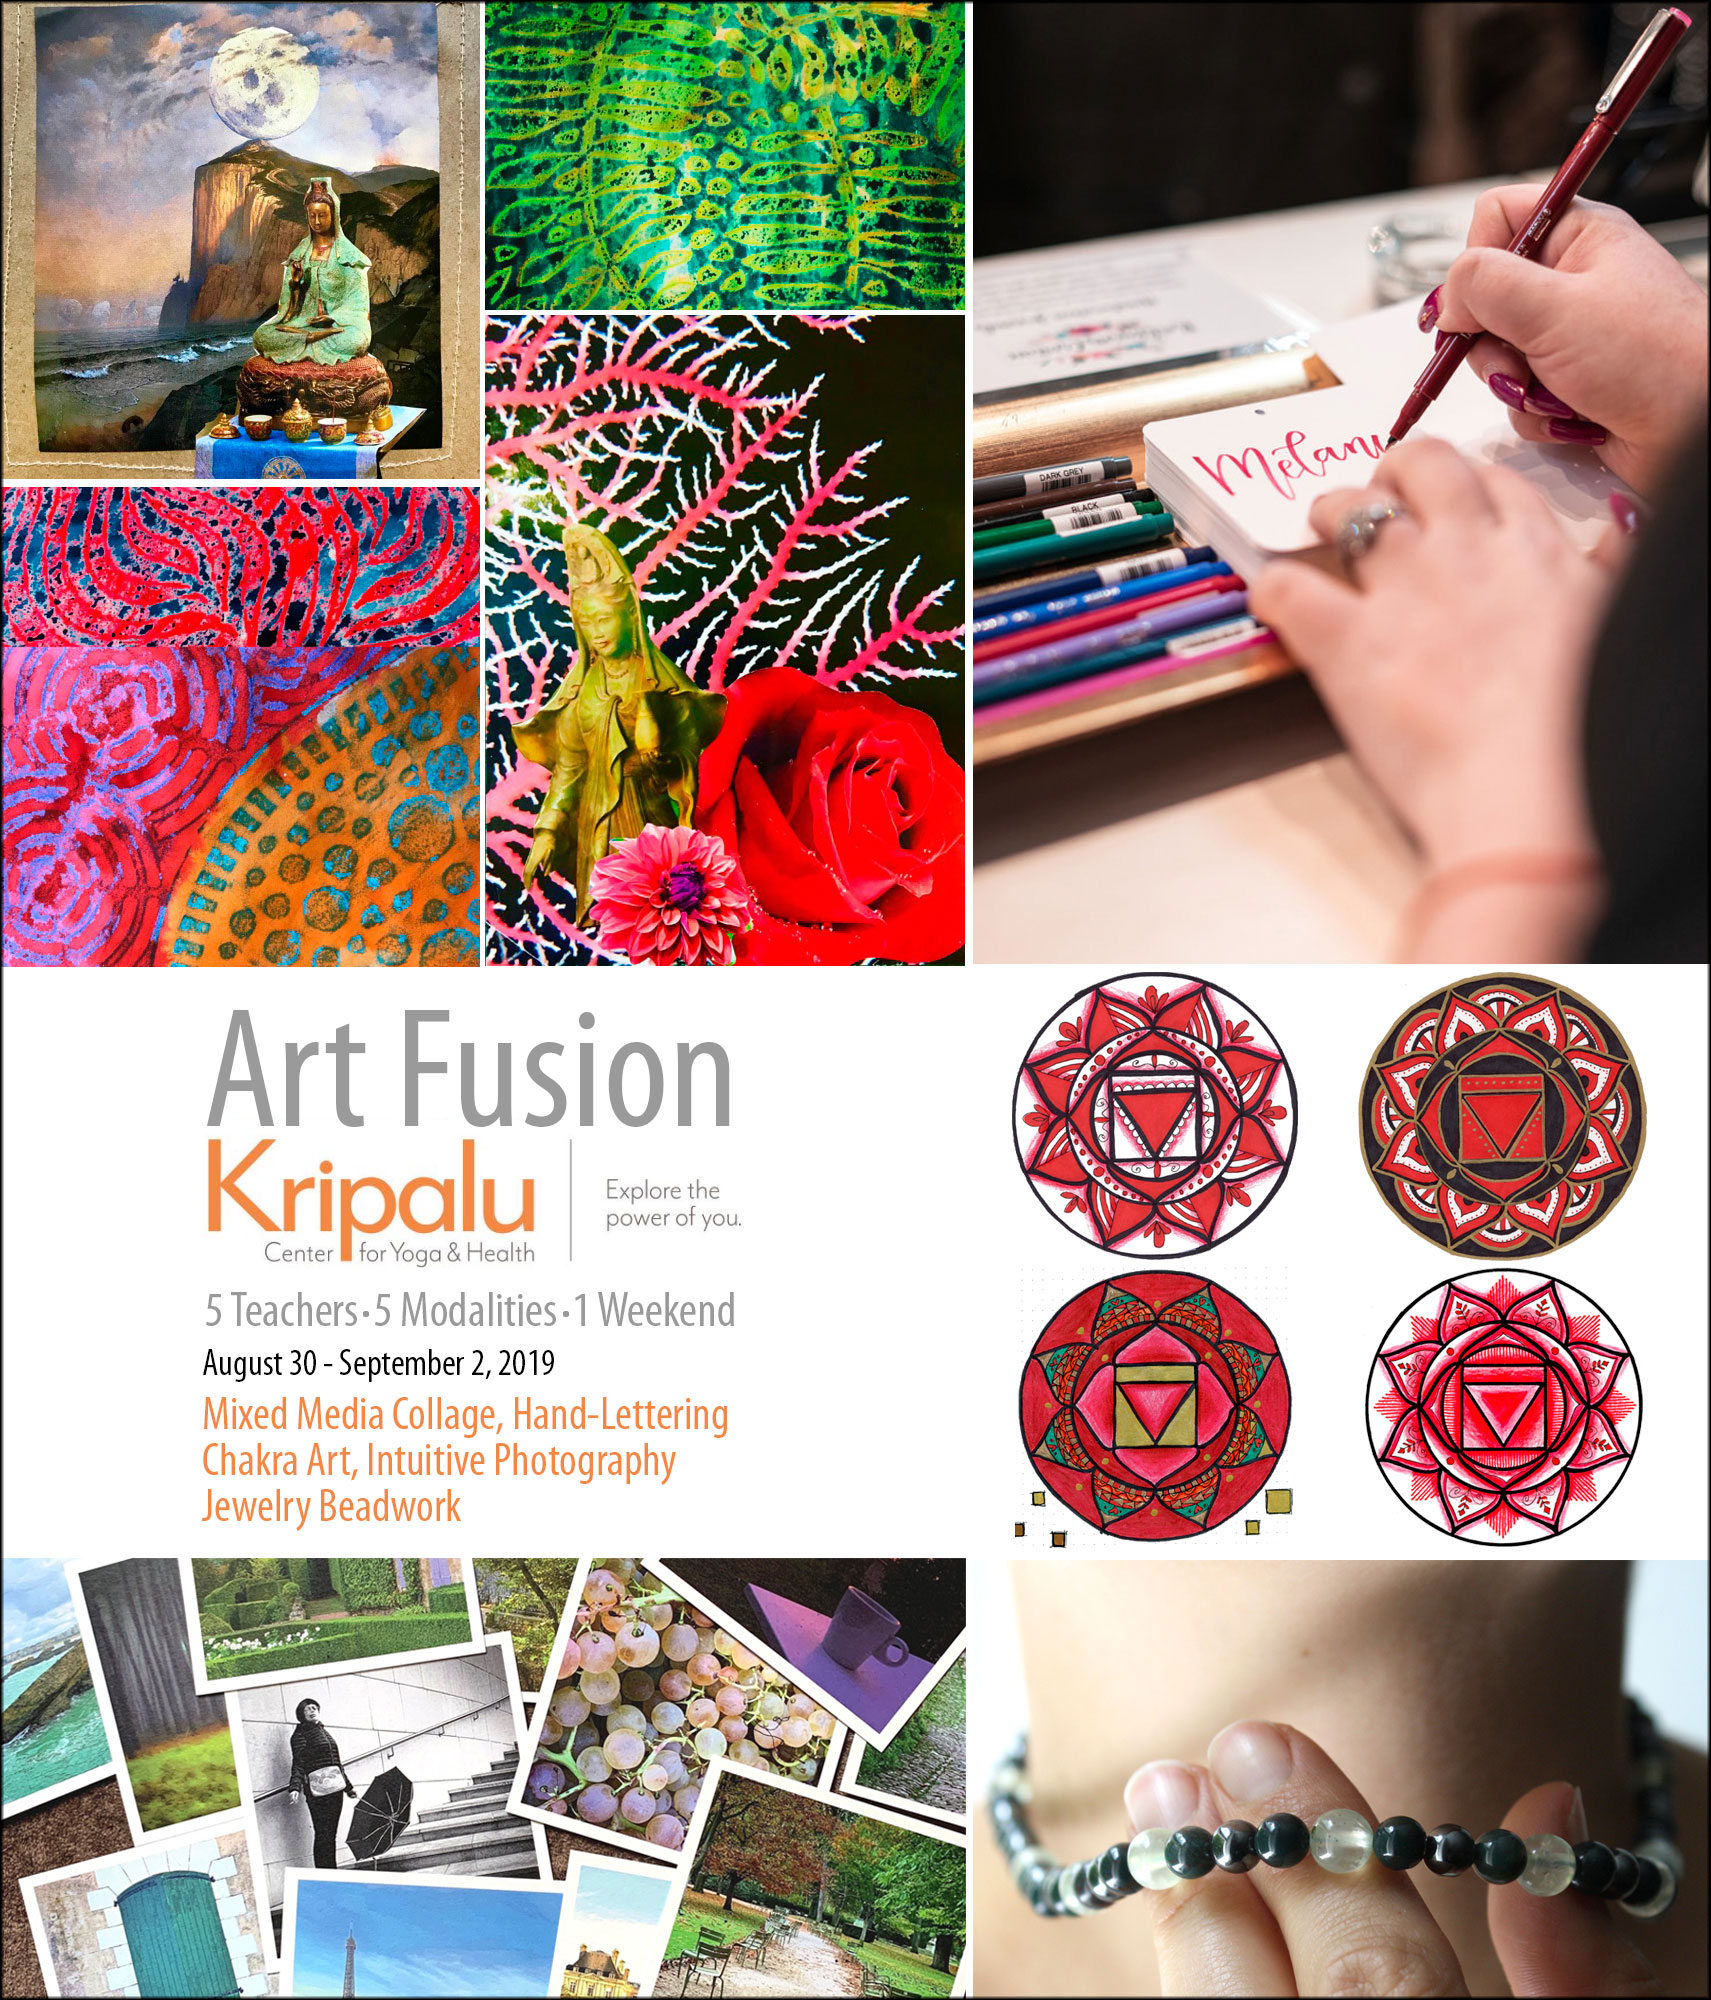 Art Fusion at Kripalu Center for Yoga & Health brings together an ecletic team of skilled instructors for a weekend exploring art and your creativity. Sessions include mixed media collage, hand-lettering, chakra art, intuitive photography, and jewelry beadwork.